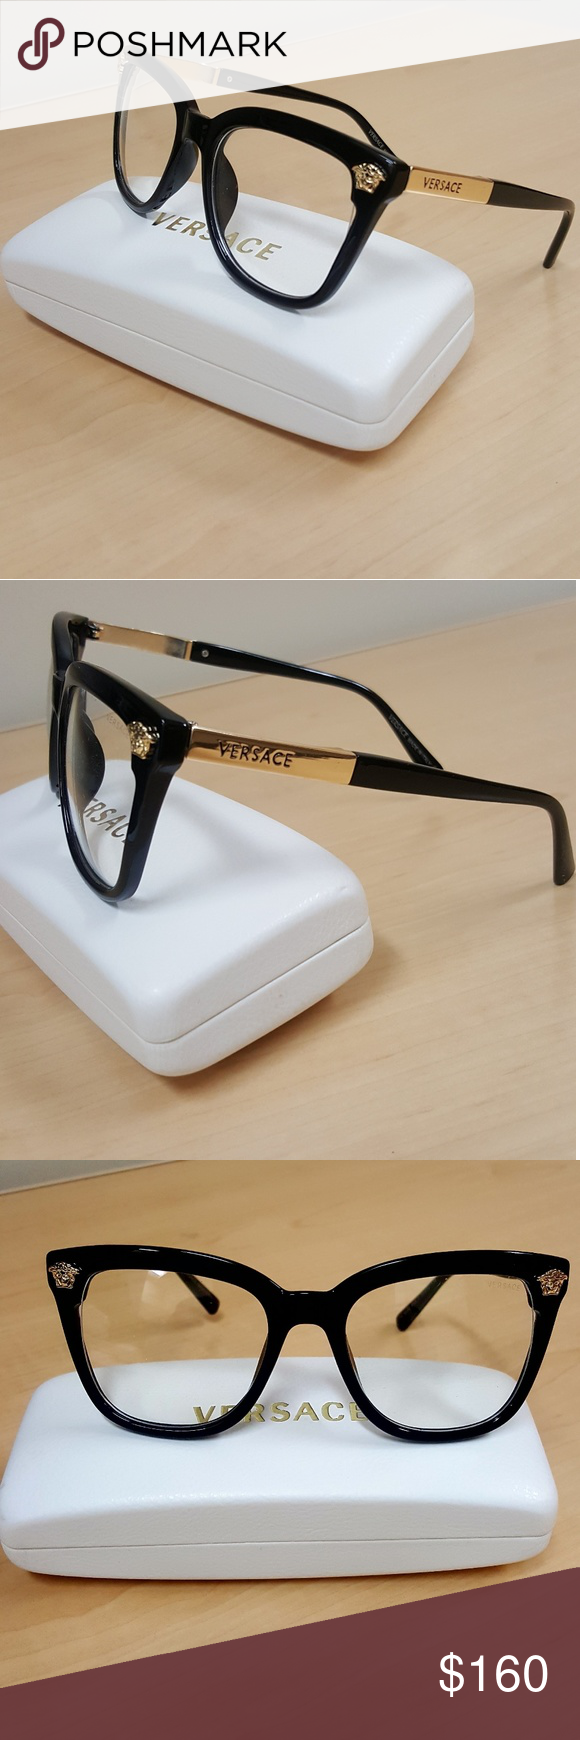 2cb05f145ed Nice Authentic Versace Sig Cat-Eye Medusa Glasses One of the finest unisex  eyeglasses from Gianni Versace Versace Accessories Glasses